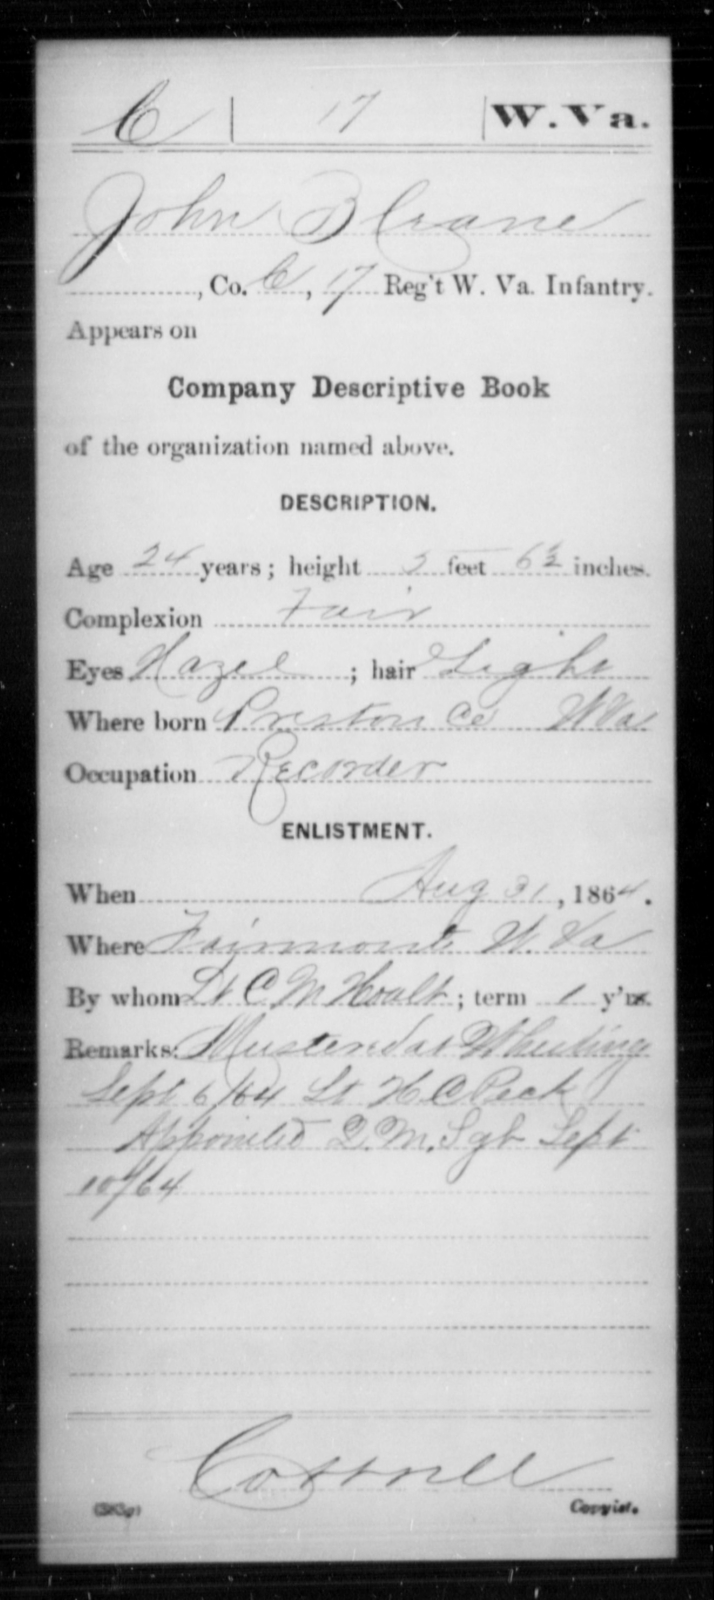 Crane, John B - Age 24, Year: 1864 - Miscellaneous Card Abstracts of Records - West Virginia